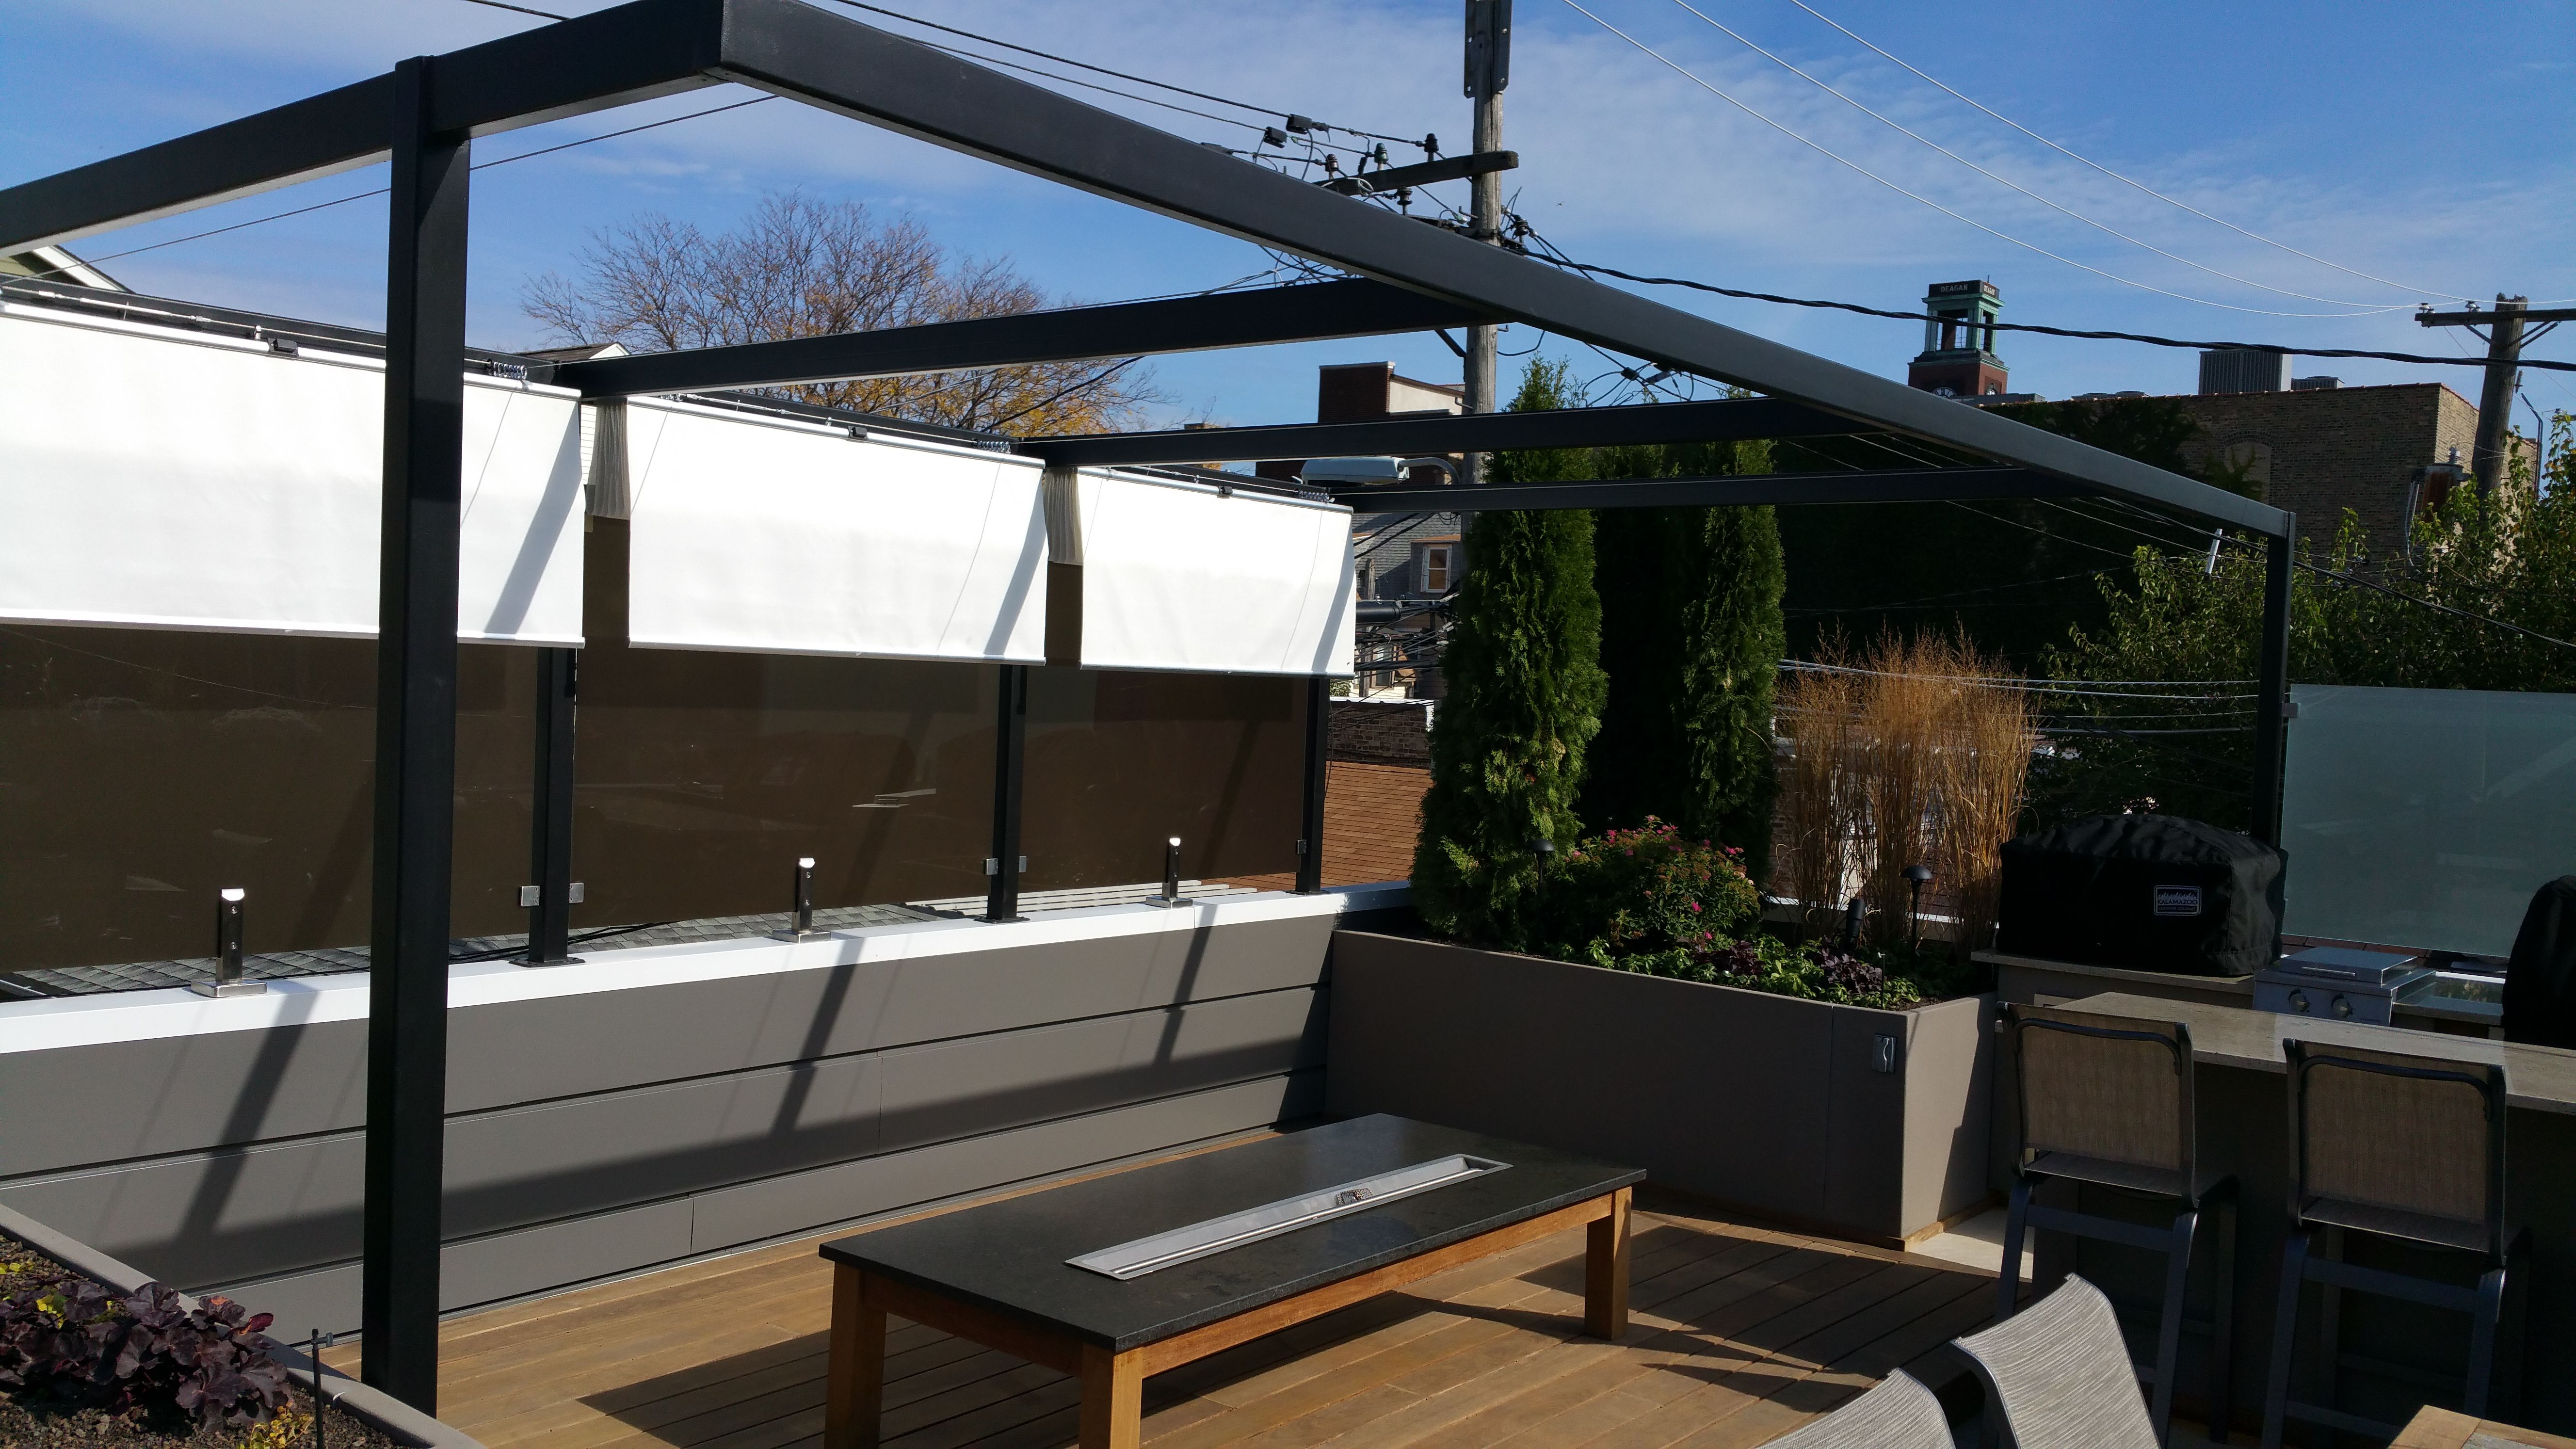 Infinity canopy can easily be retracted with the pulley system outdoorliving infinitycanopy infiniteshade modular canopy pergola luxury outdoors